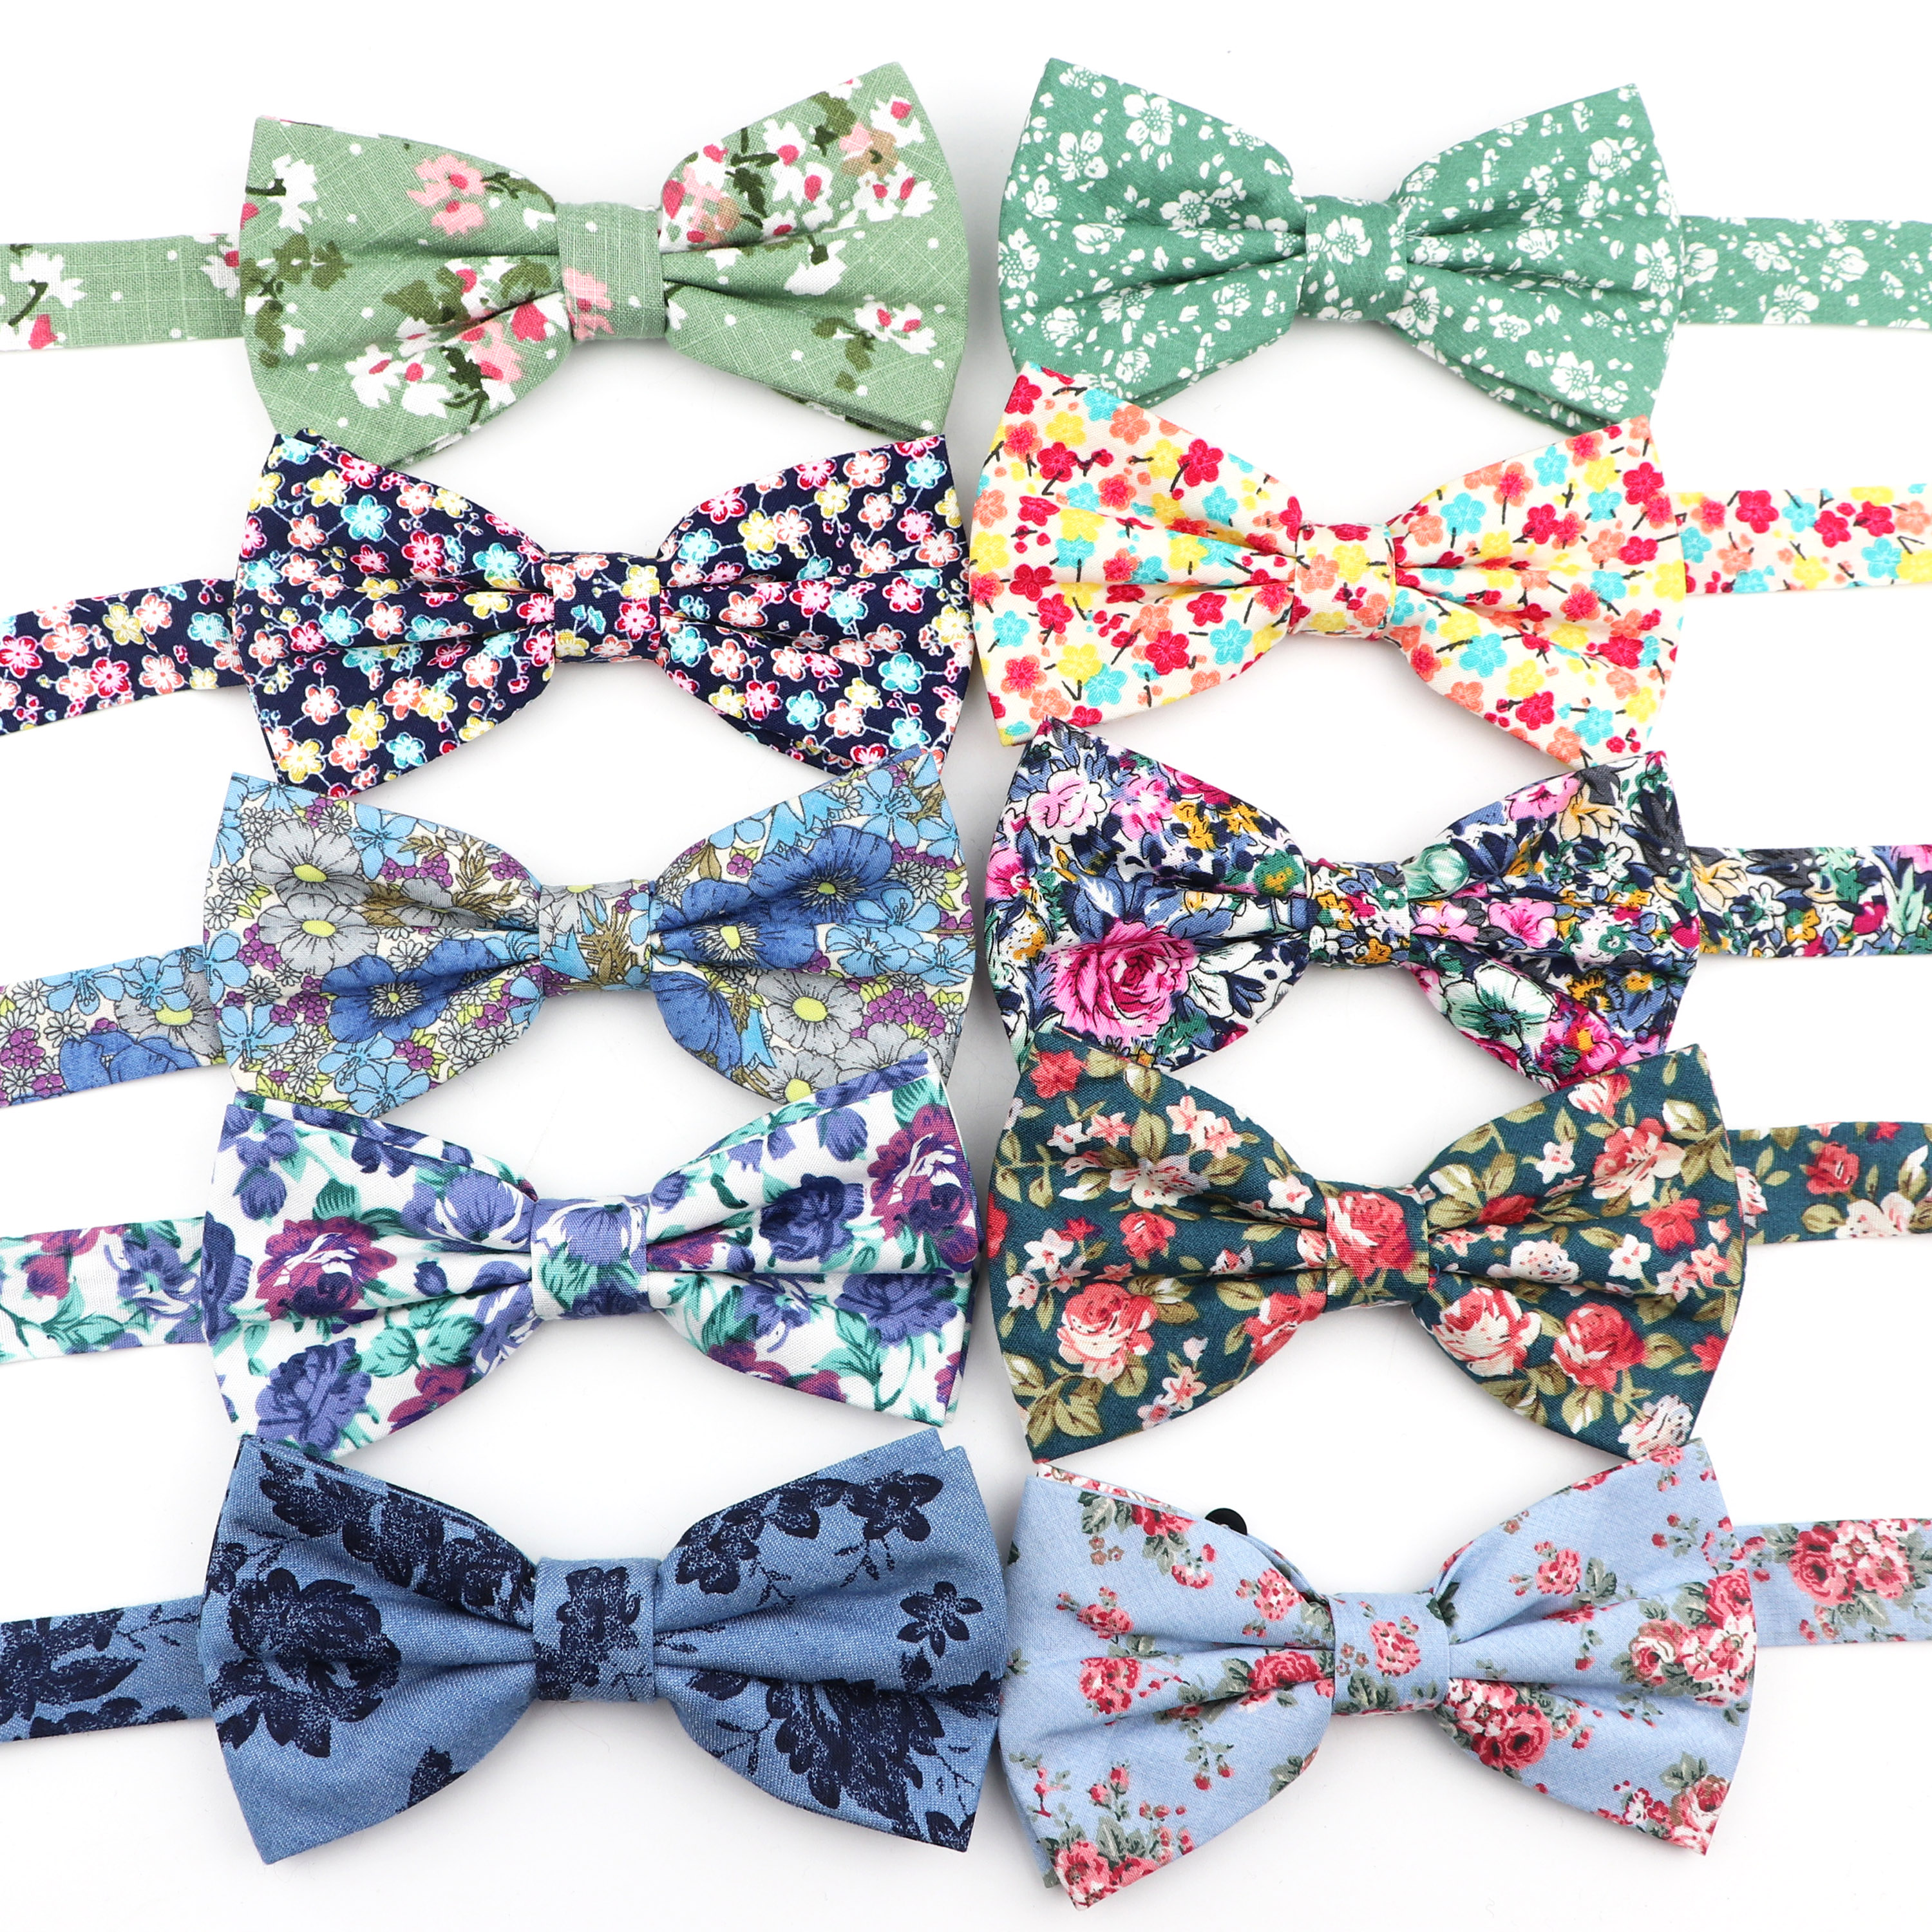 New Chic Vintage Floral Bowtie Mens Fashion Novelty Handmade Cotton Butterfly Party Dinner Wedding BowTie Gift Bowknot Accessory